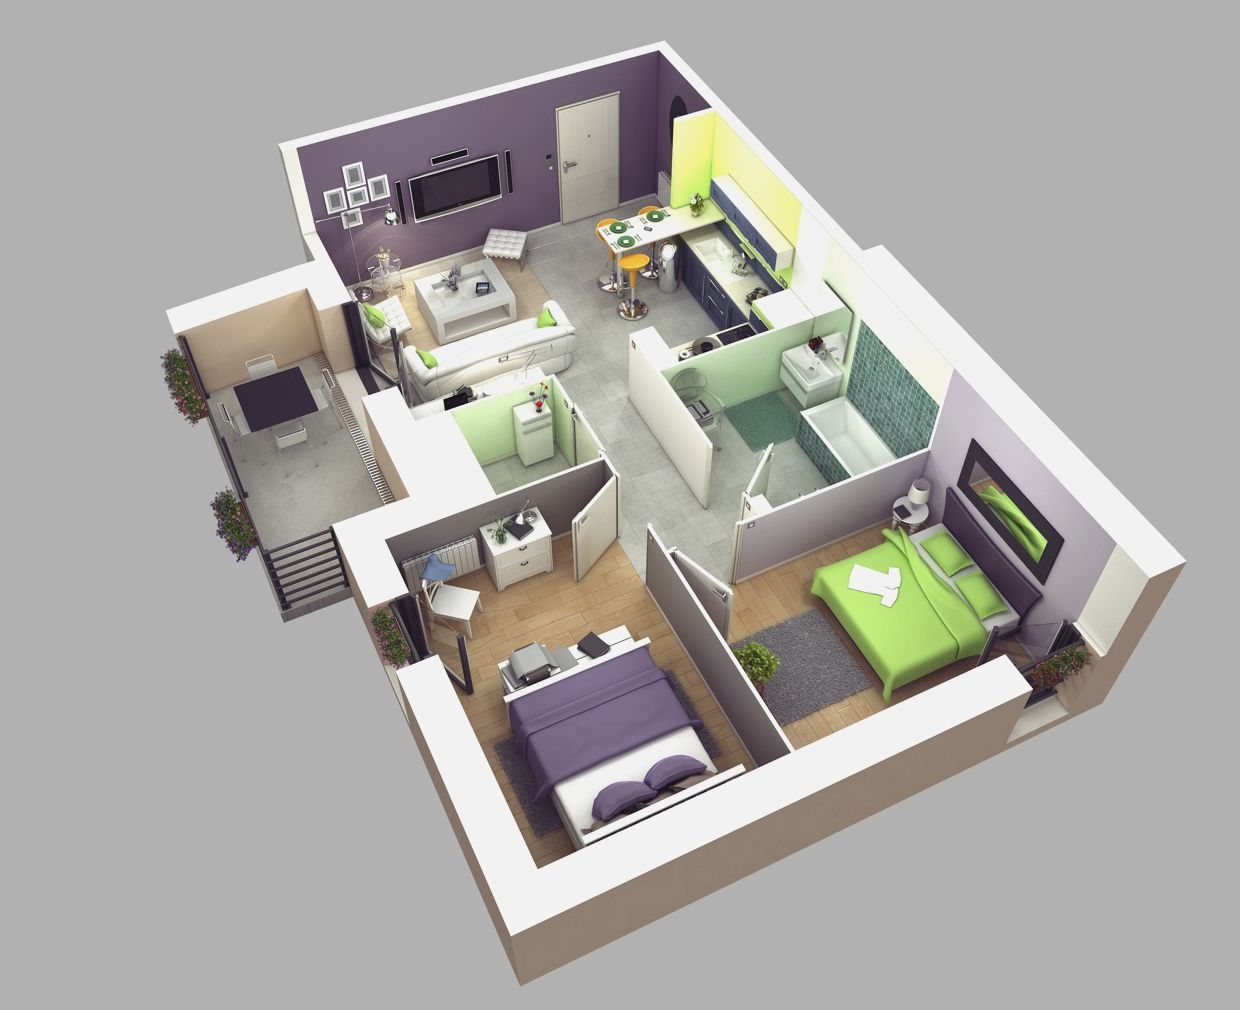 1 bedroom house plans 3d just the two of us apartment for 2 bedroom house plans 3d